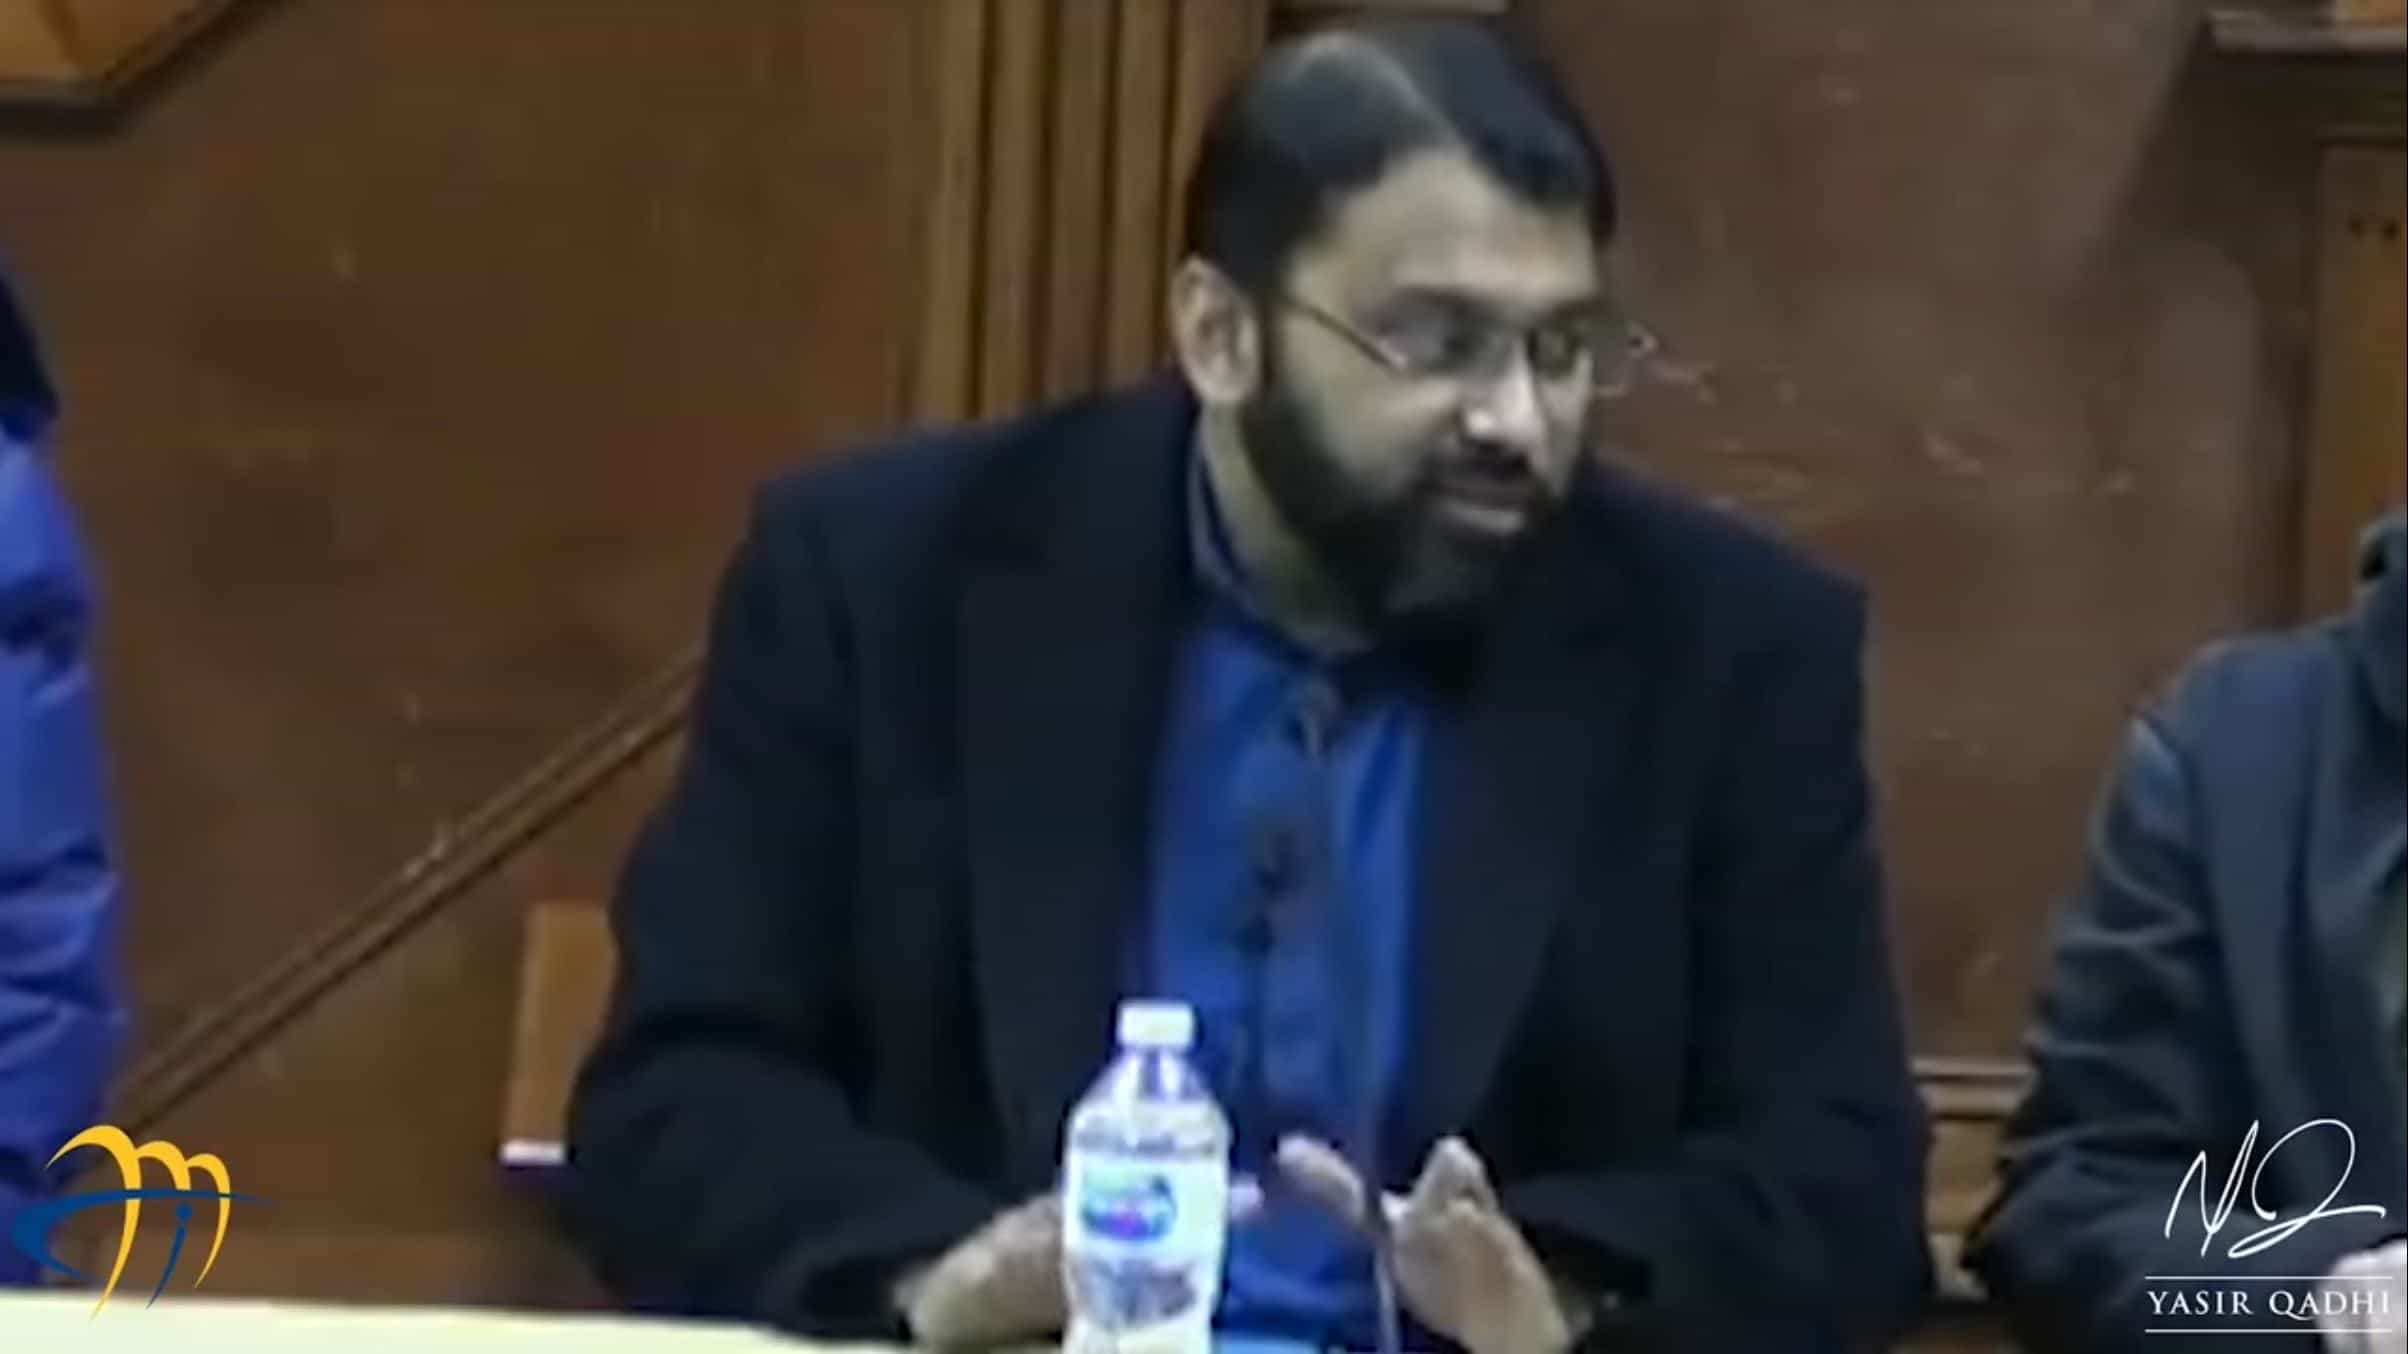 Yasir Qadhi – Should Muslims Visit Al-Aqsa?